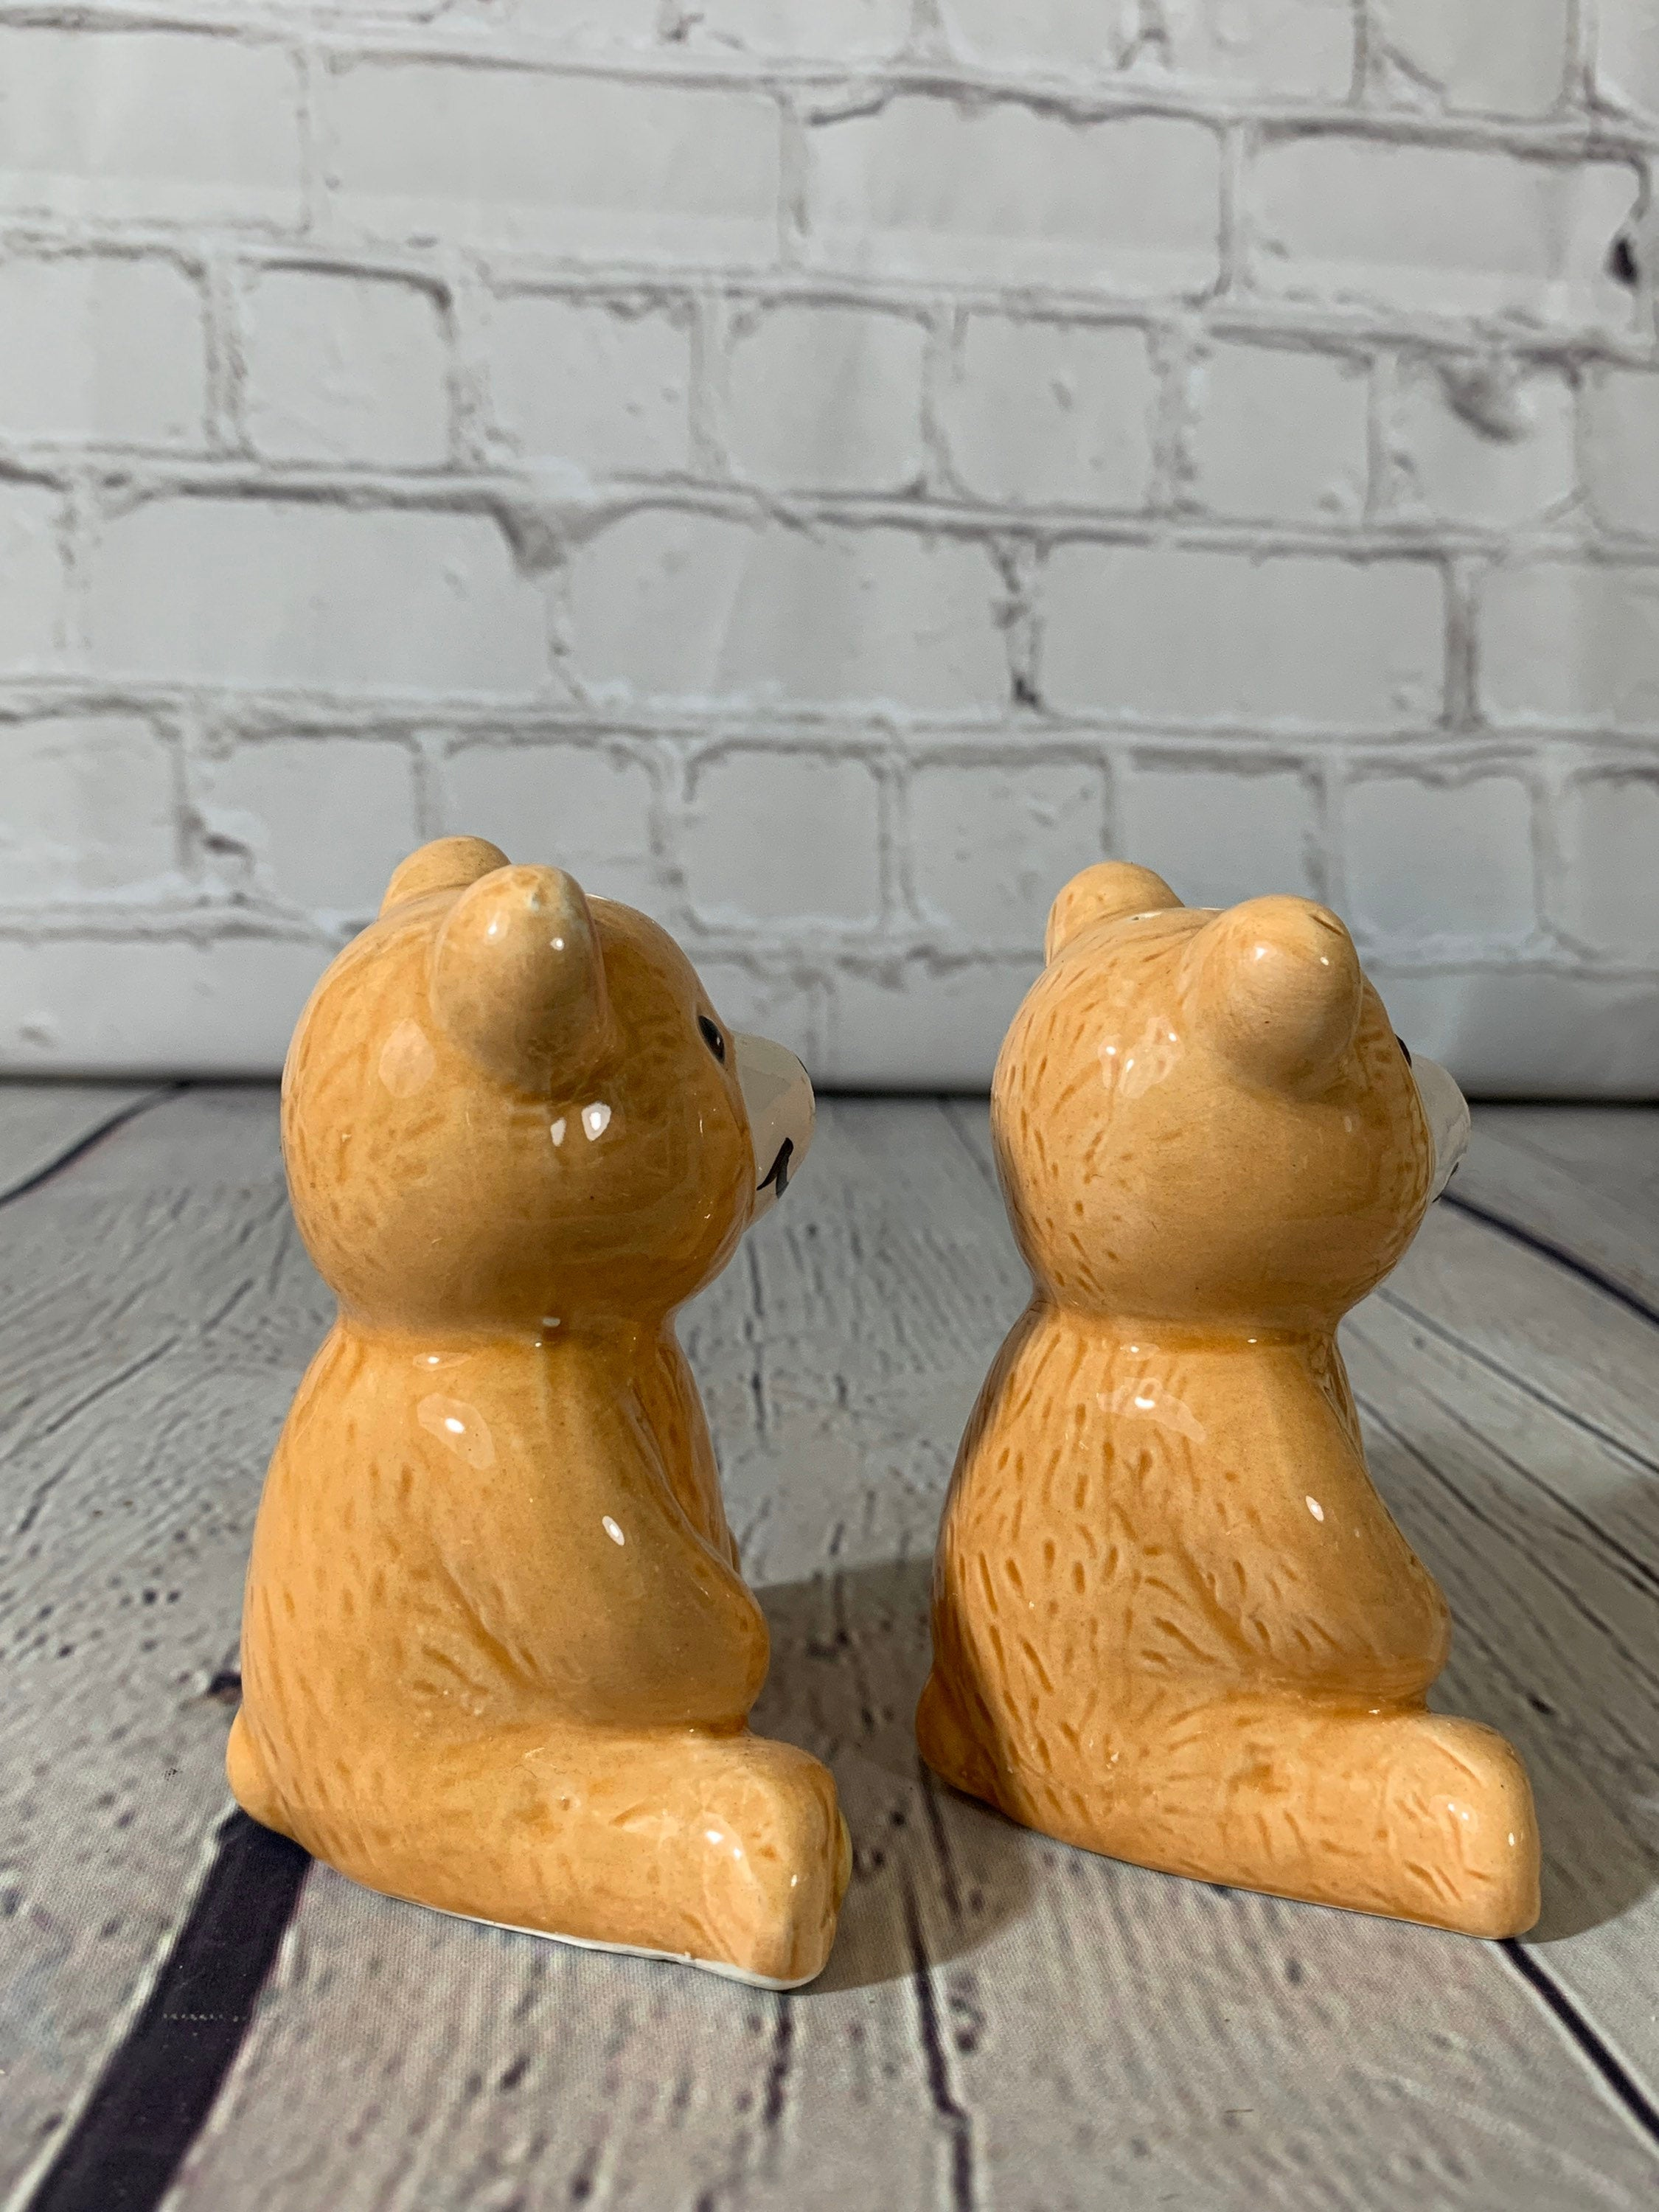 Vintage Ceramic Teddy Bear Salt & Pepper Shakers- 1990's